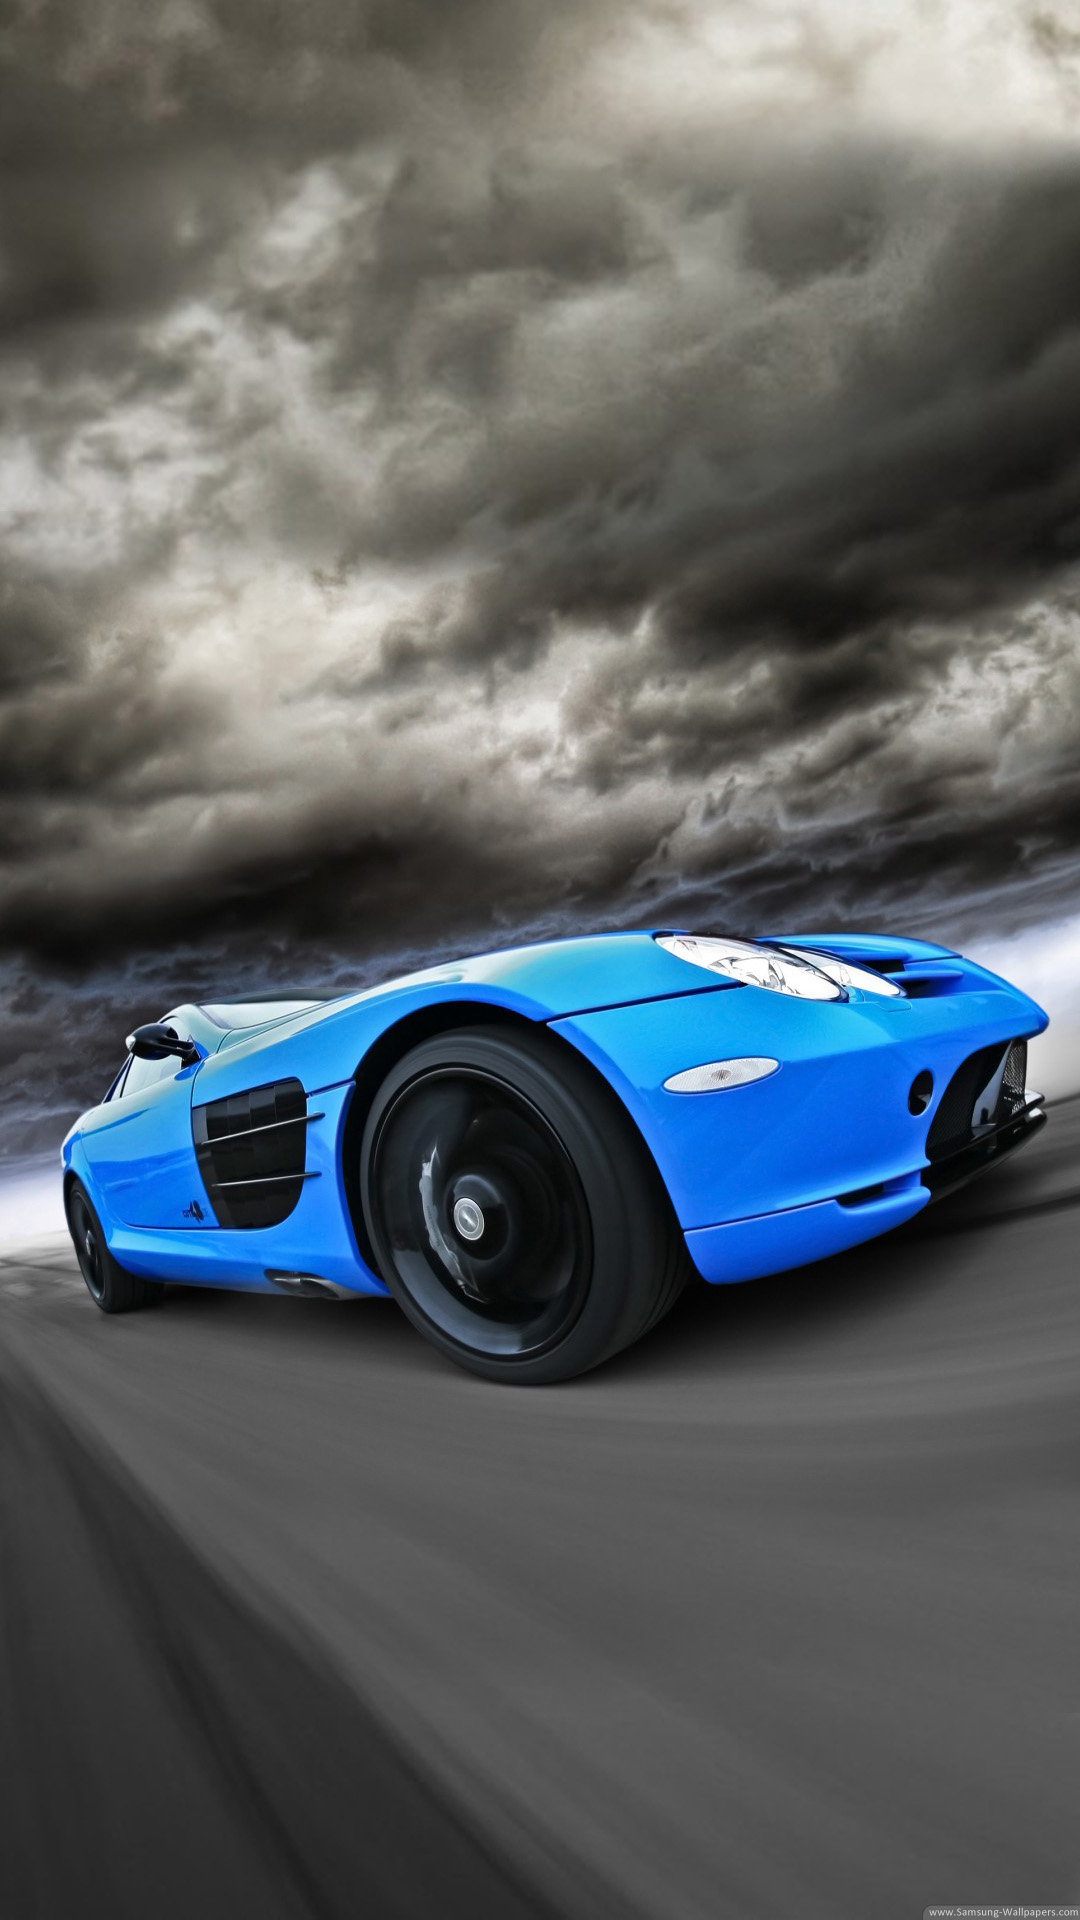 Exotic Car Wallpaper : exotic, wallpaper, EXOTIC, WALLPAPERS, SPEED, LOVERS., Godfather, Style